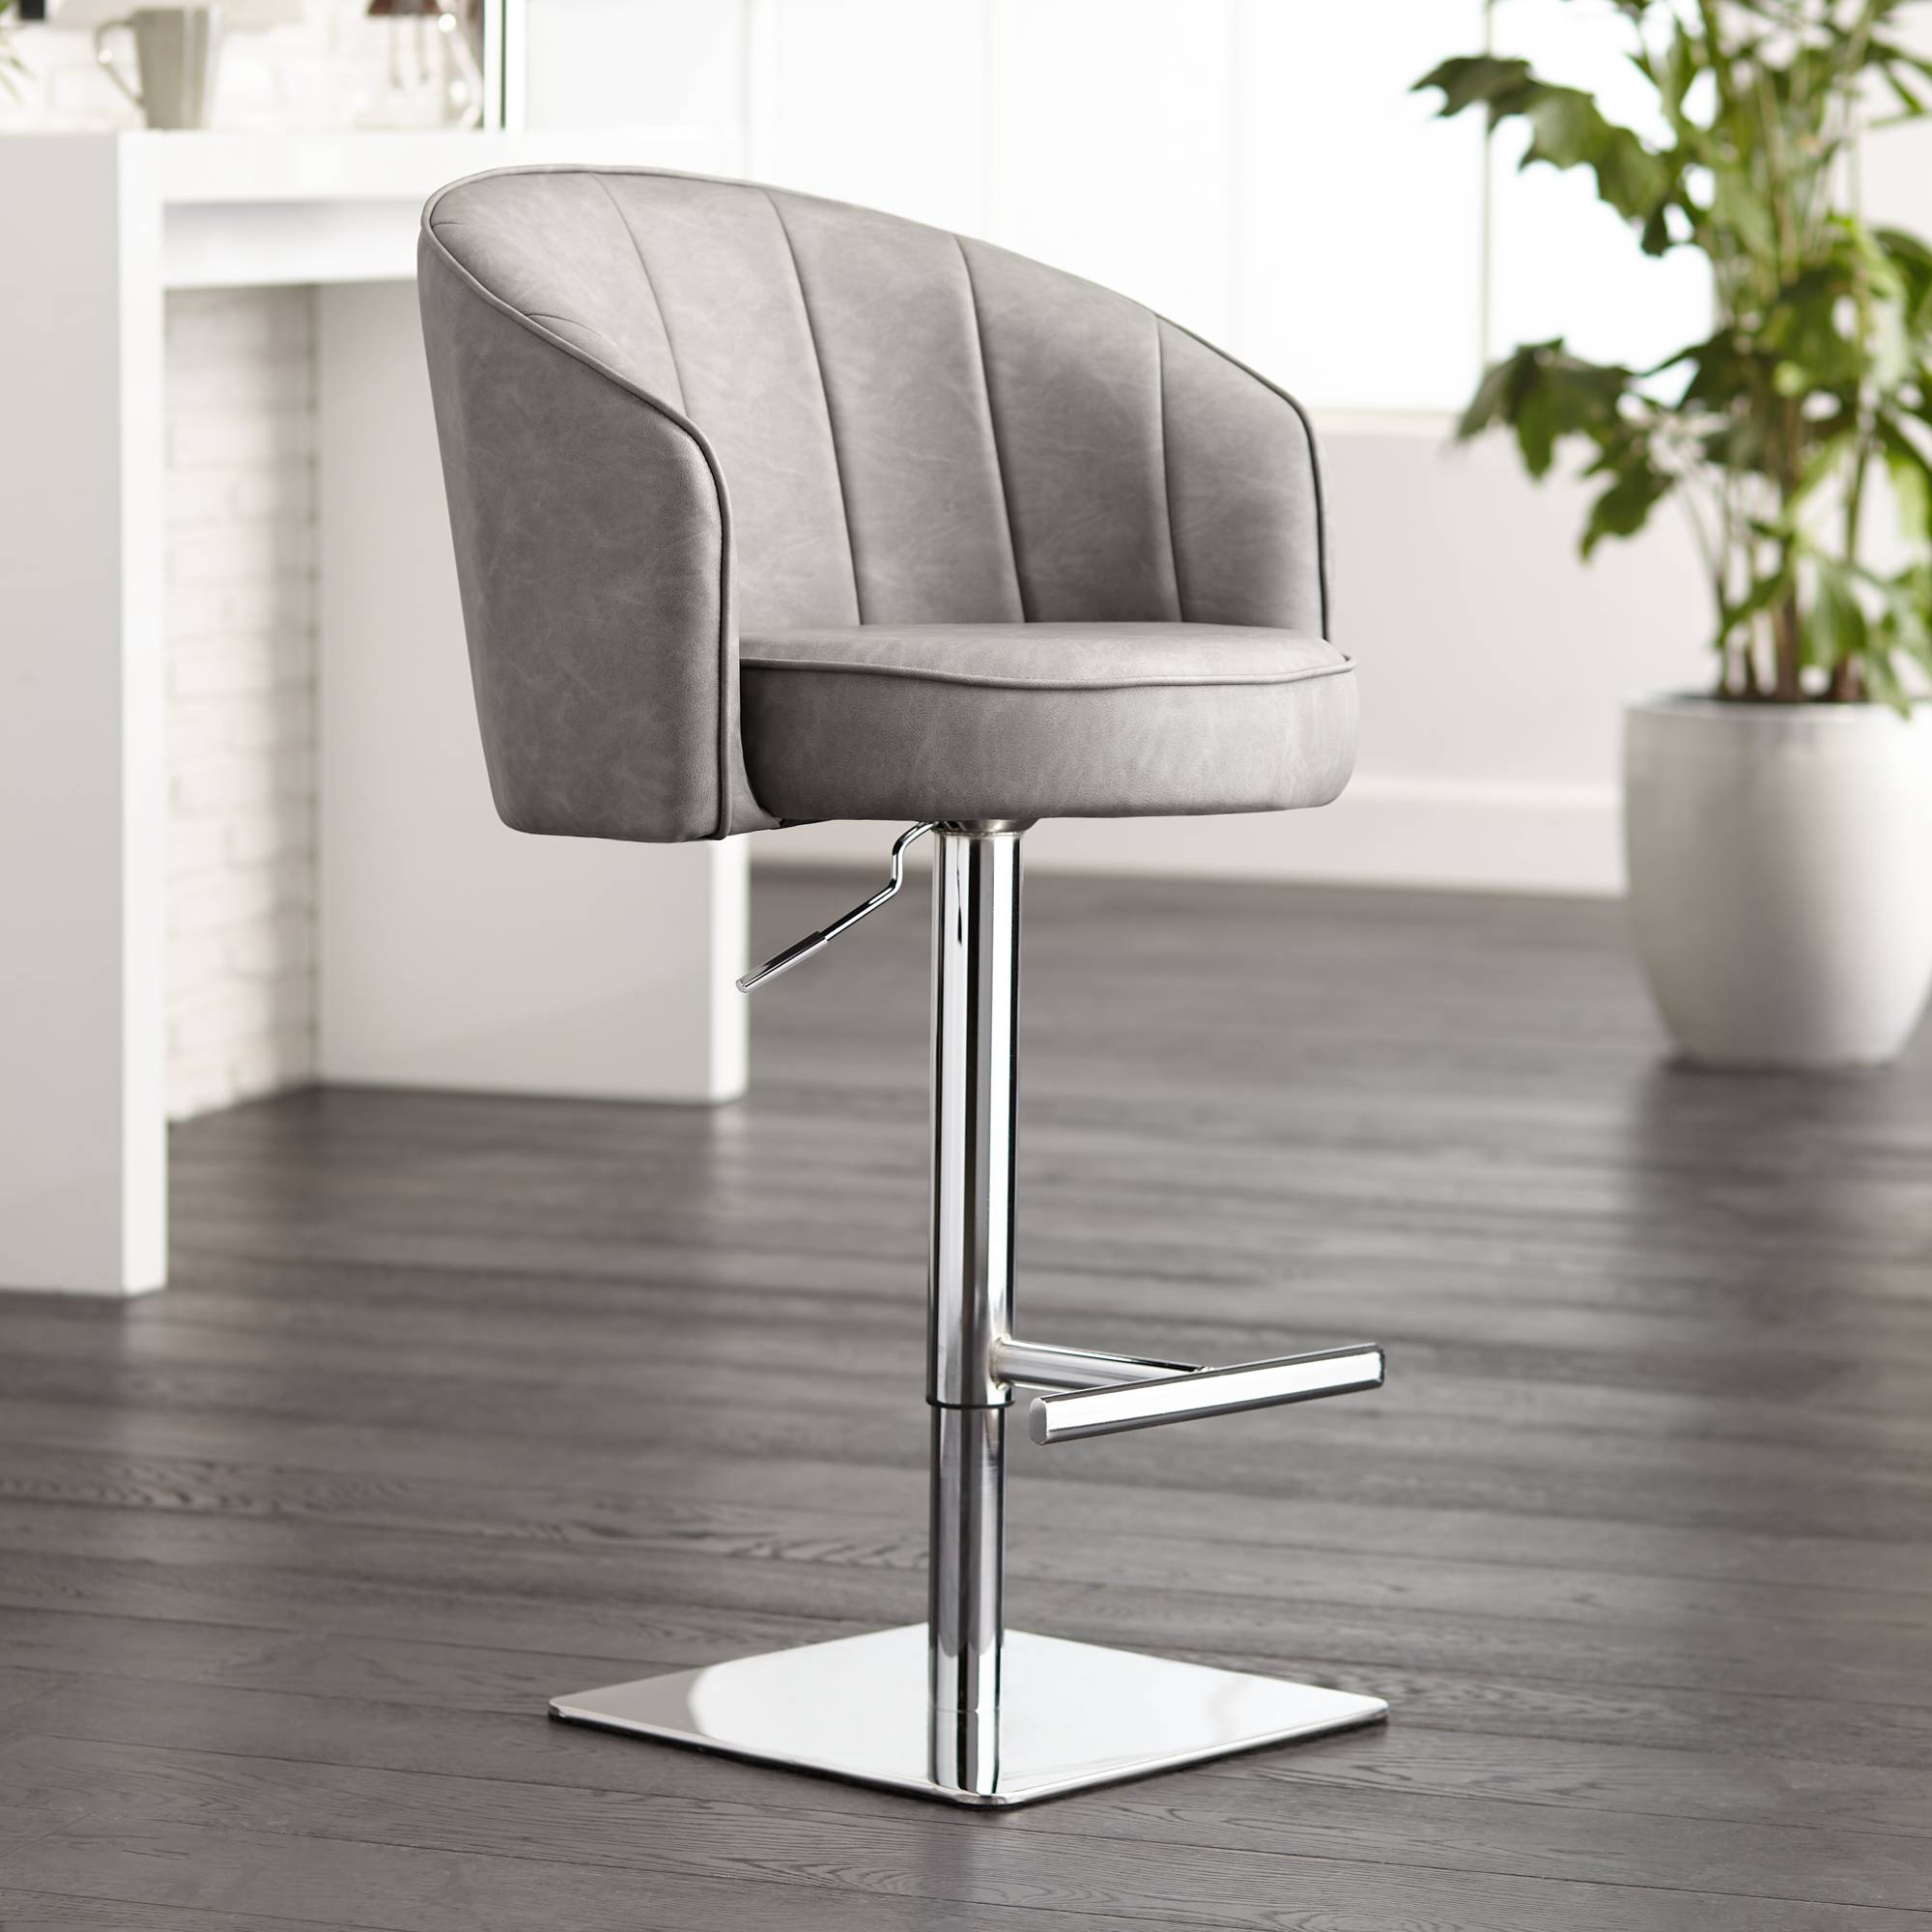 Awe Inspiring Details About Chase Gray Faux Leather Swivel Adjustable Bar Stool Pdpeps Interior Chair Design Pdpepsorg